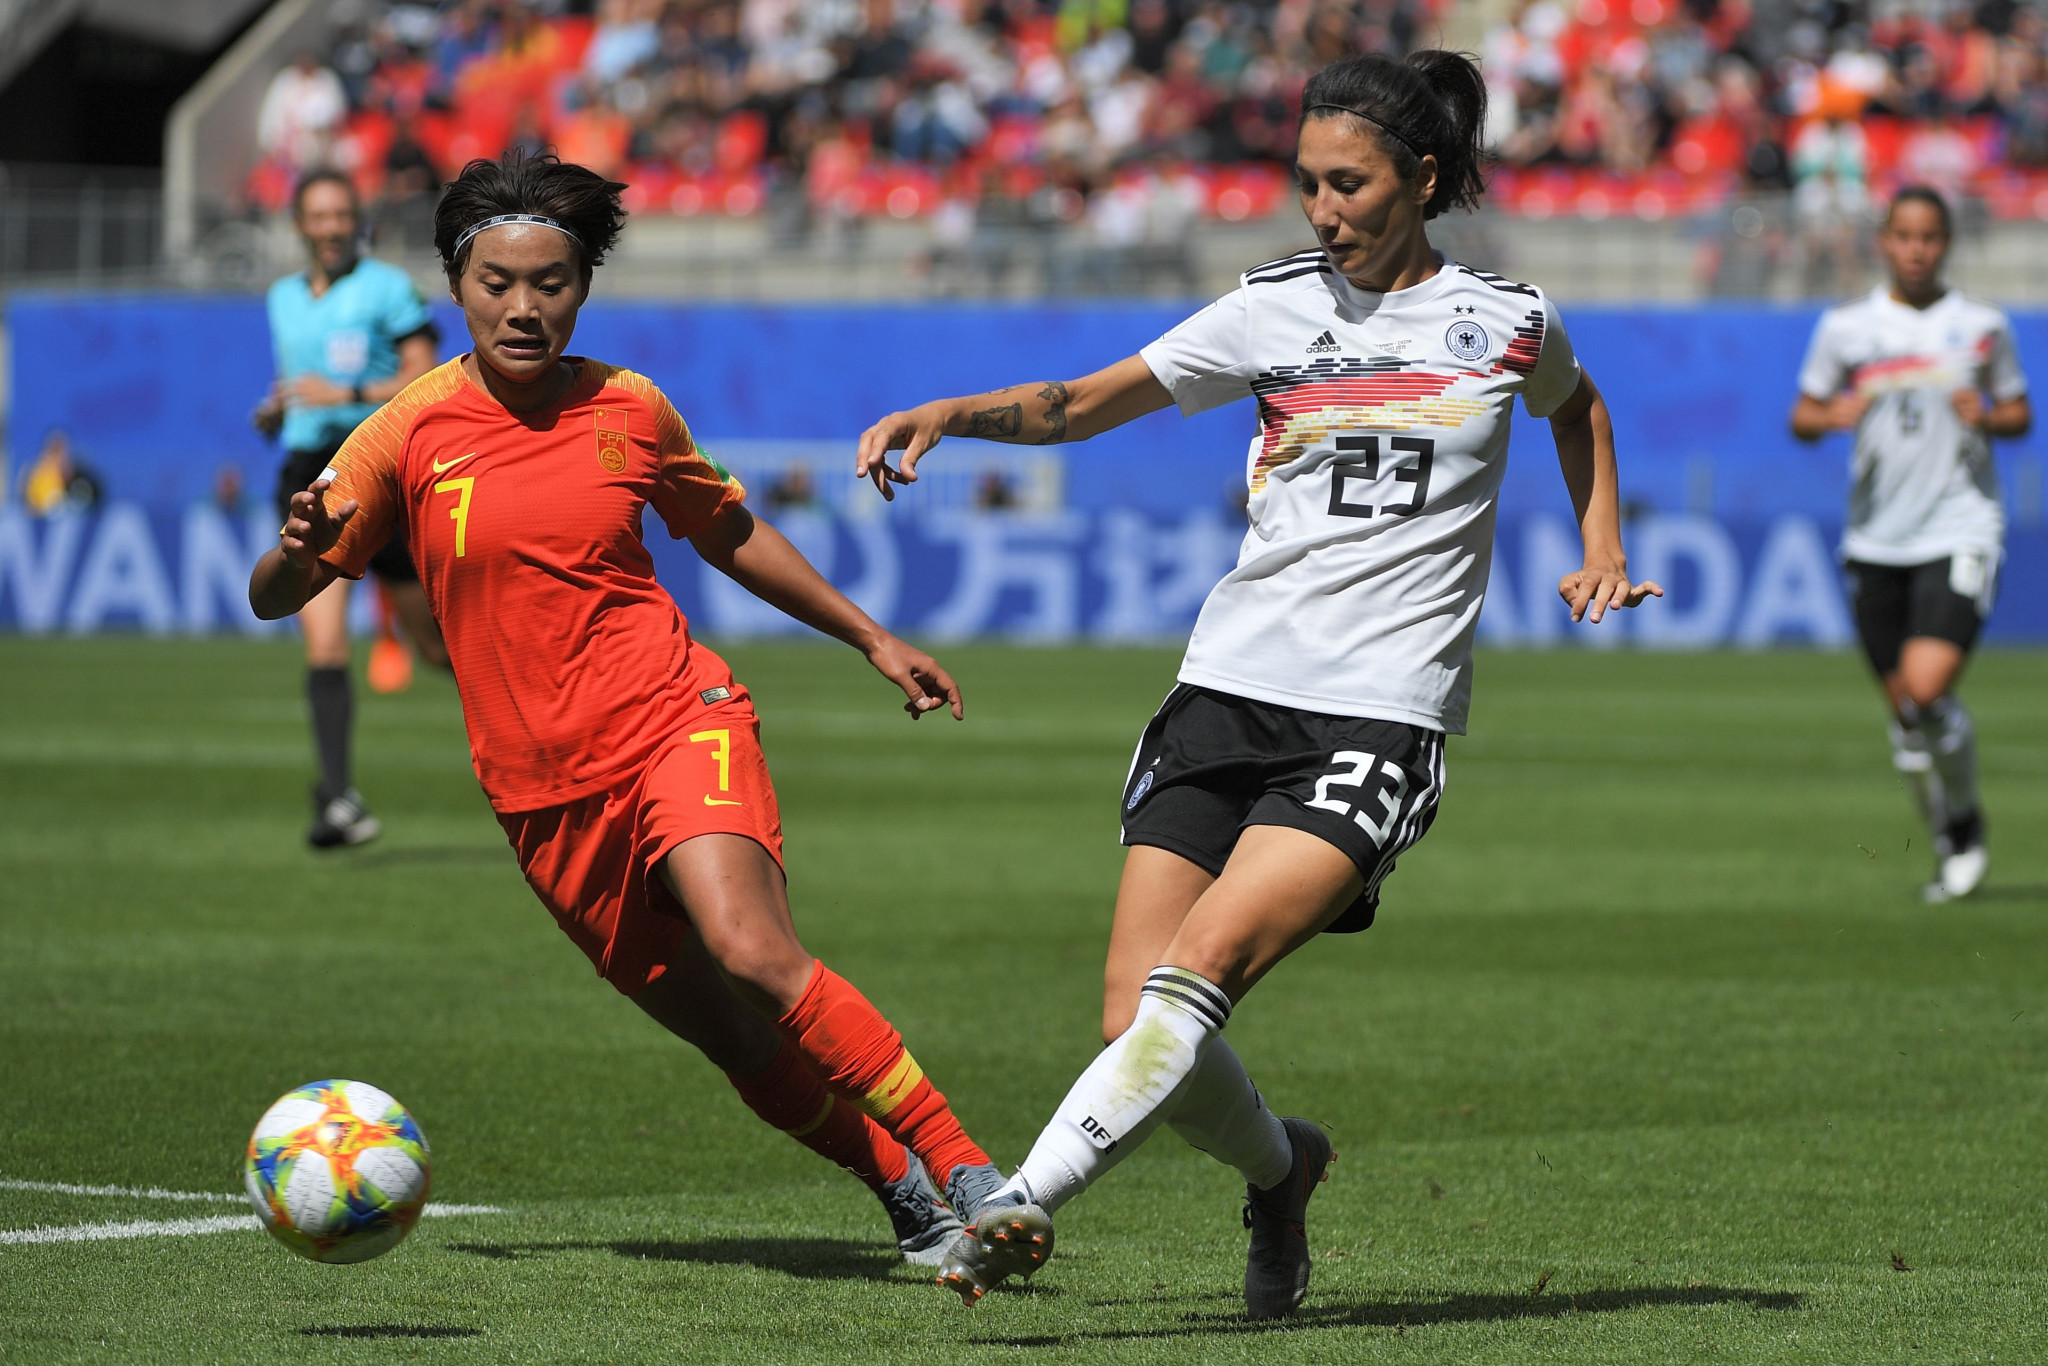 Olympic champions Germany secure unconvincing opening win at FIFA Women's World Cup